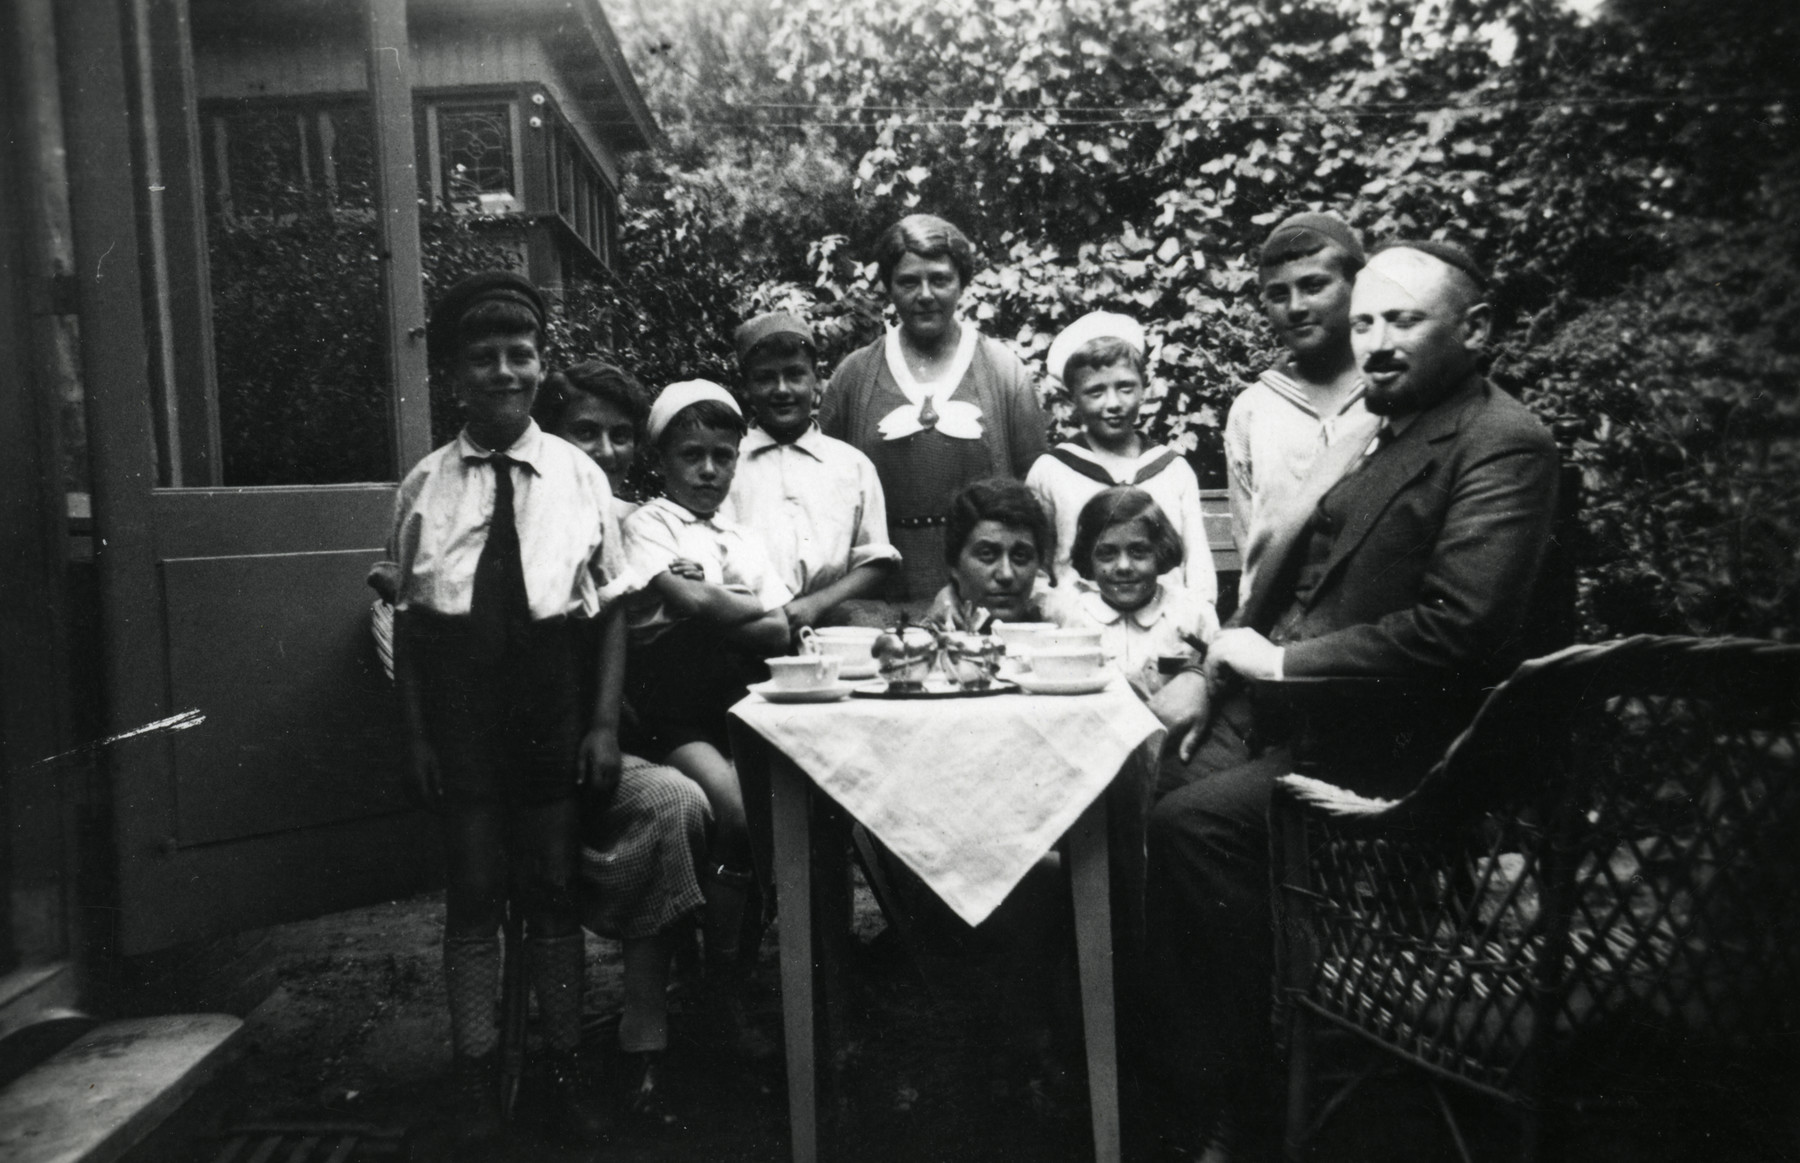 Chana and Mordechai Emanuel stand with their children by a table outside their home.